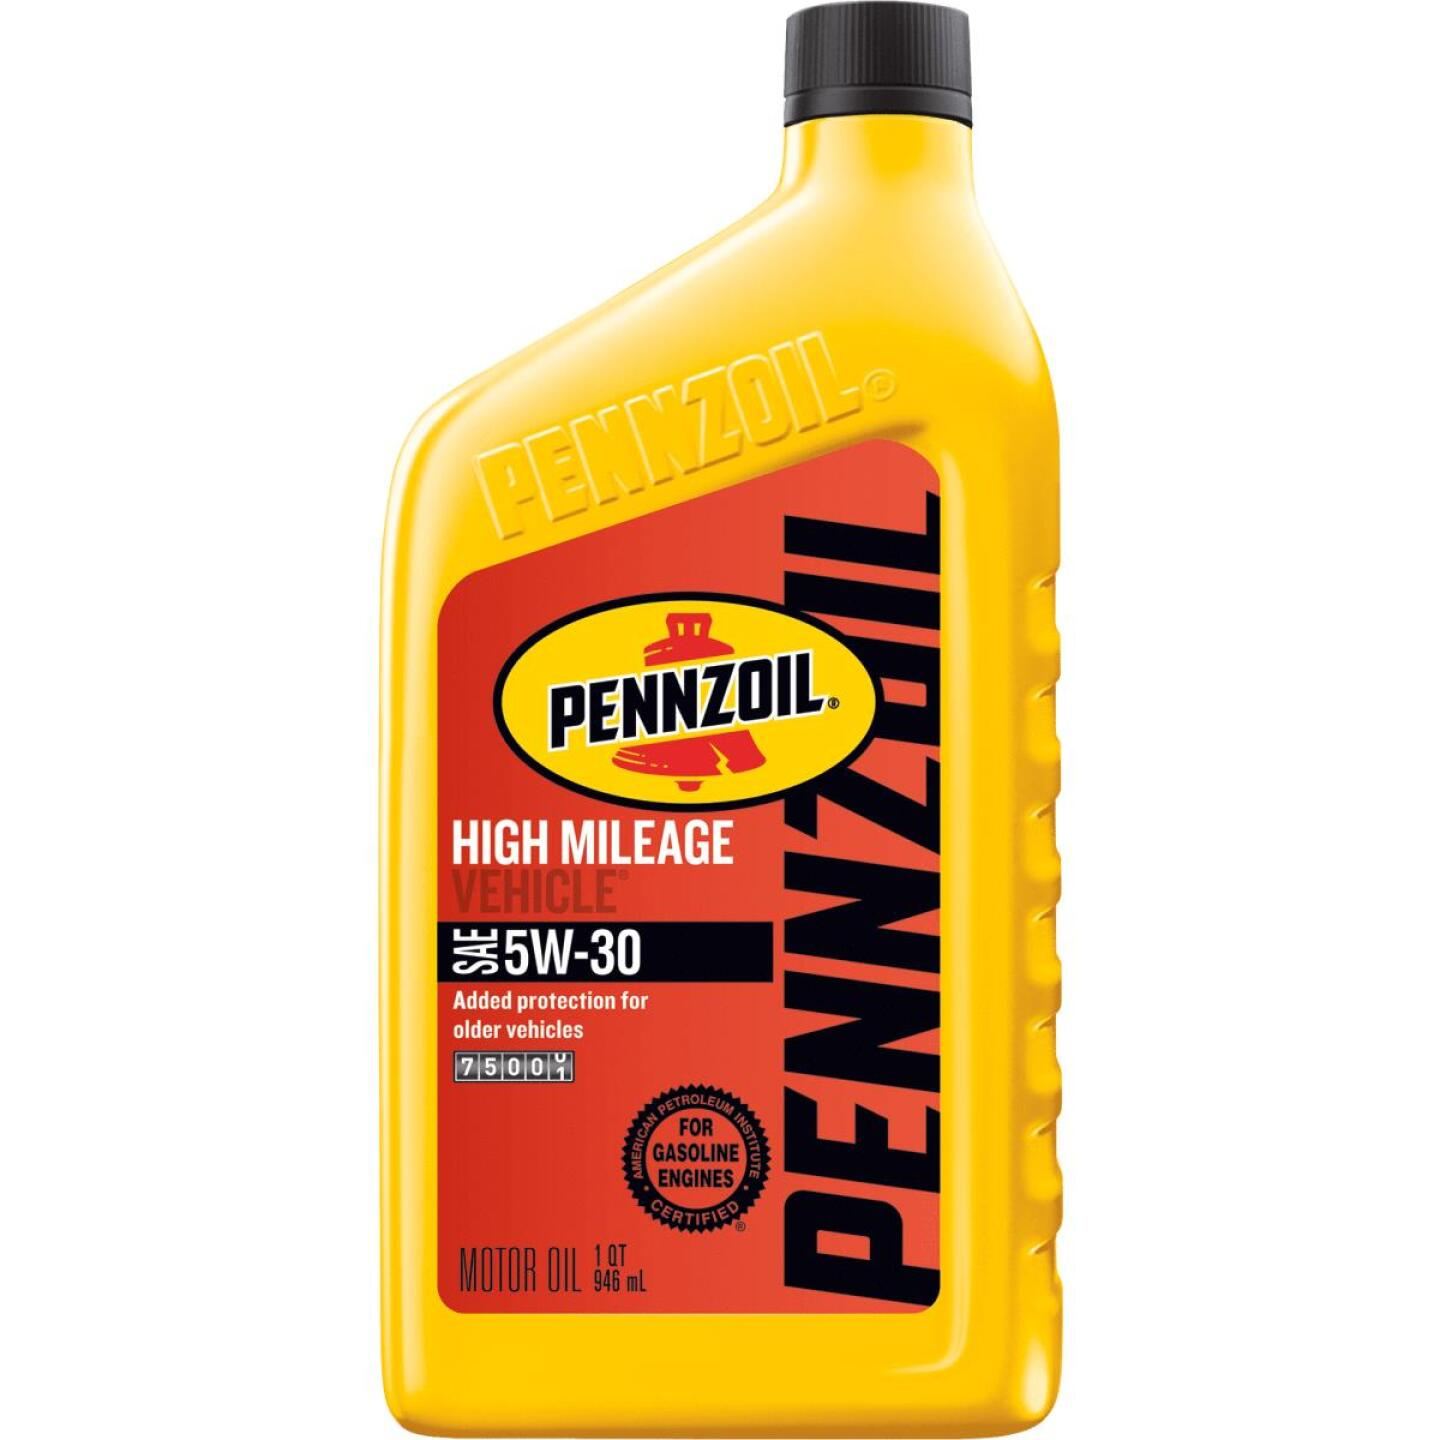 Pennzoil 5W30 Quart High Mileage Motor Oil Image 1